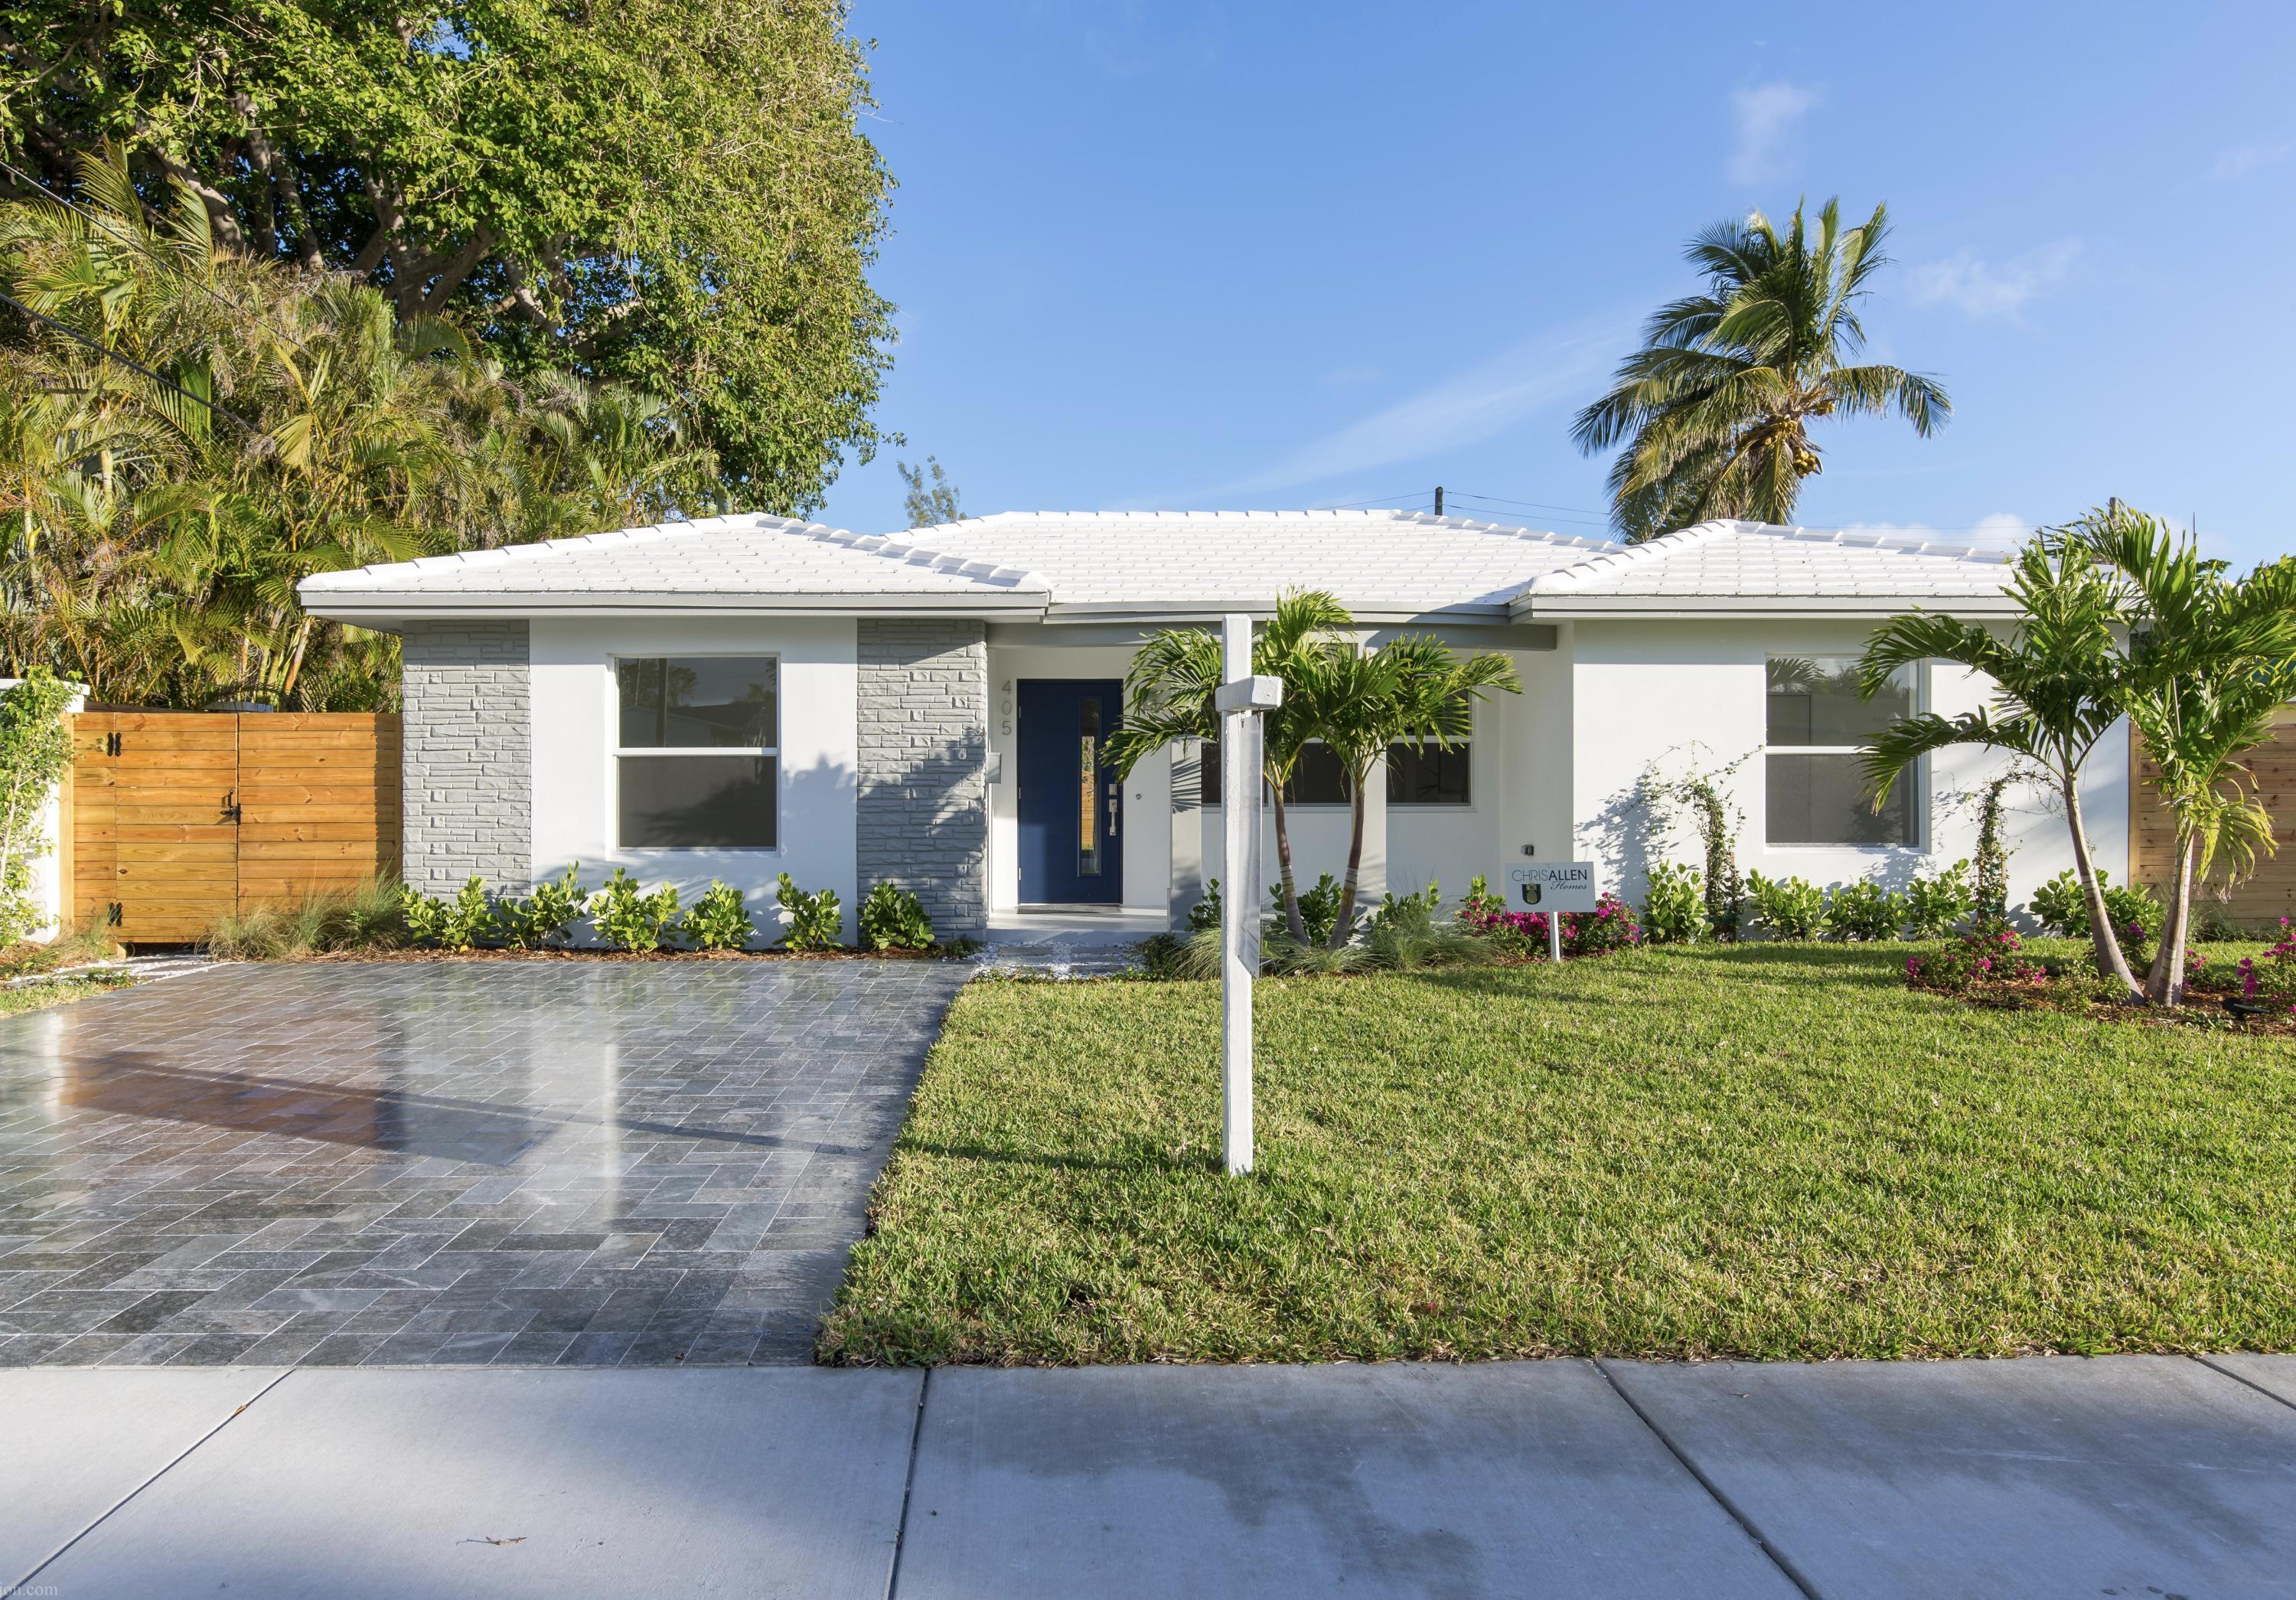 405 28th Street West Palm Beach Fl Mls Rx 10404823 Cathleen - Contemporary-west-palm-beach-property